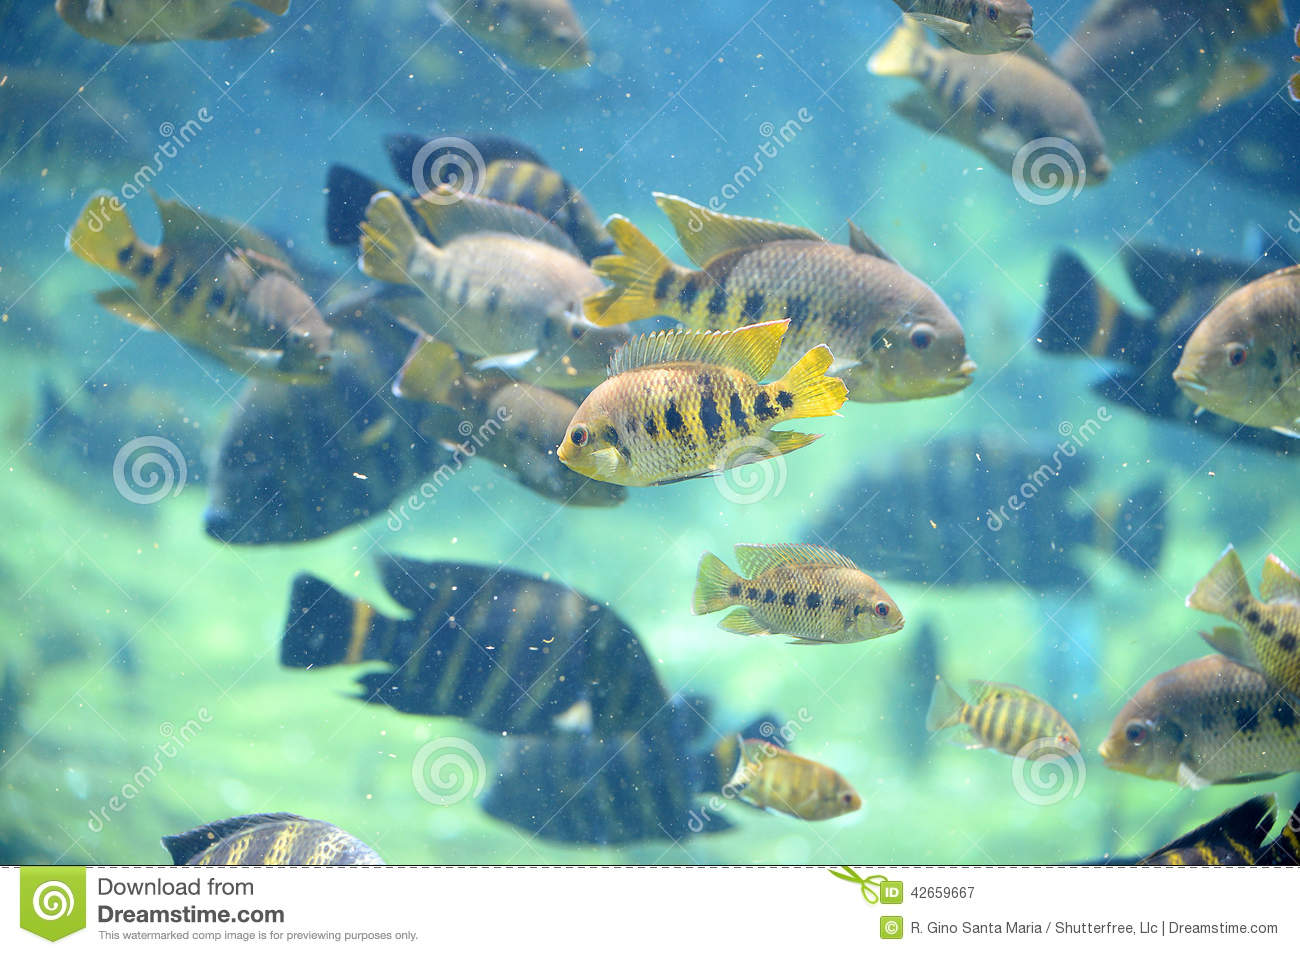 Tilapia fish underwater stock photo image 42659667 for Tilapia swimming